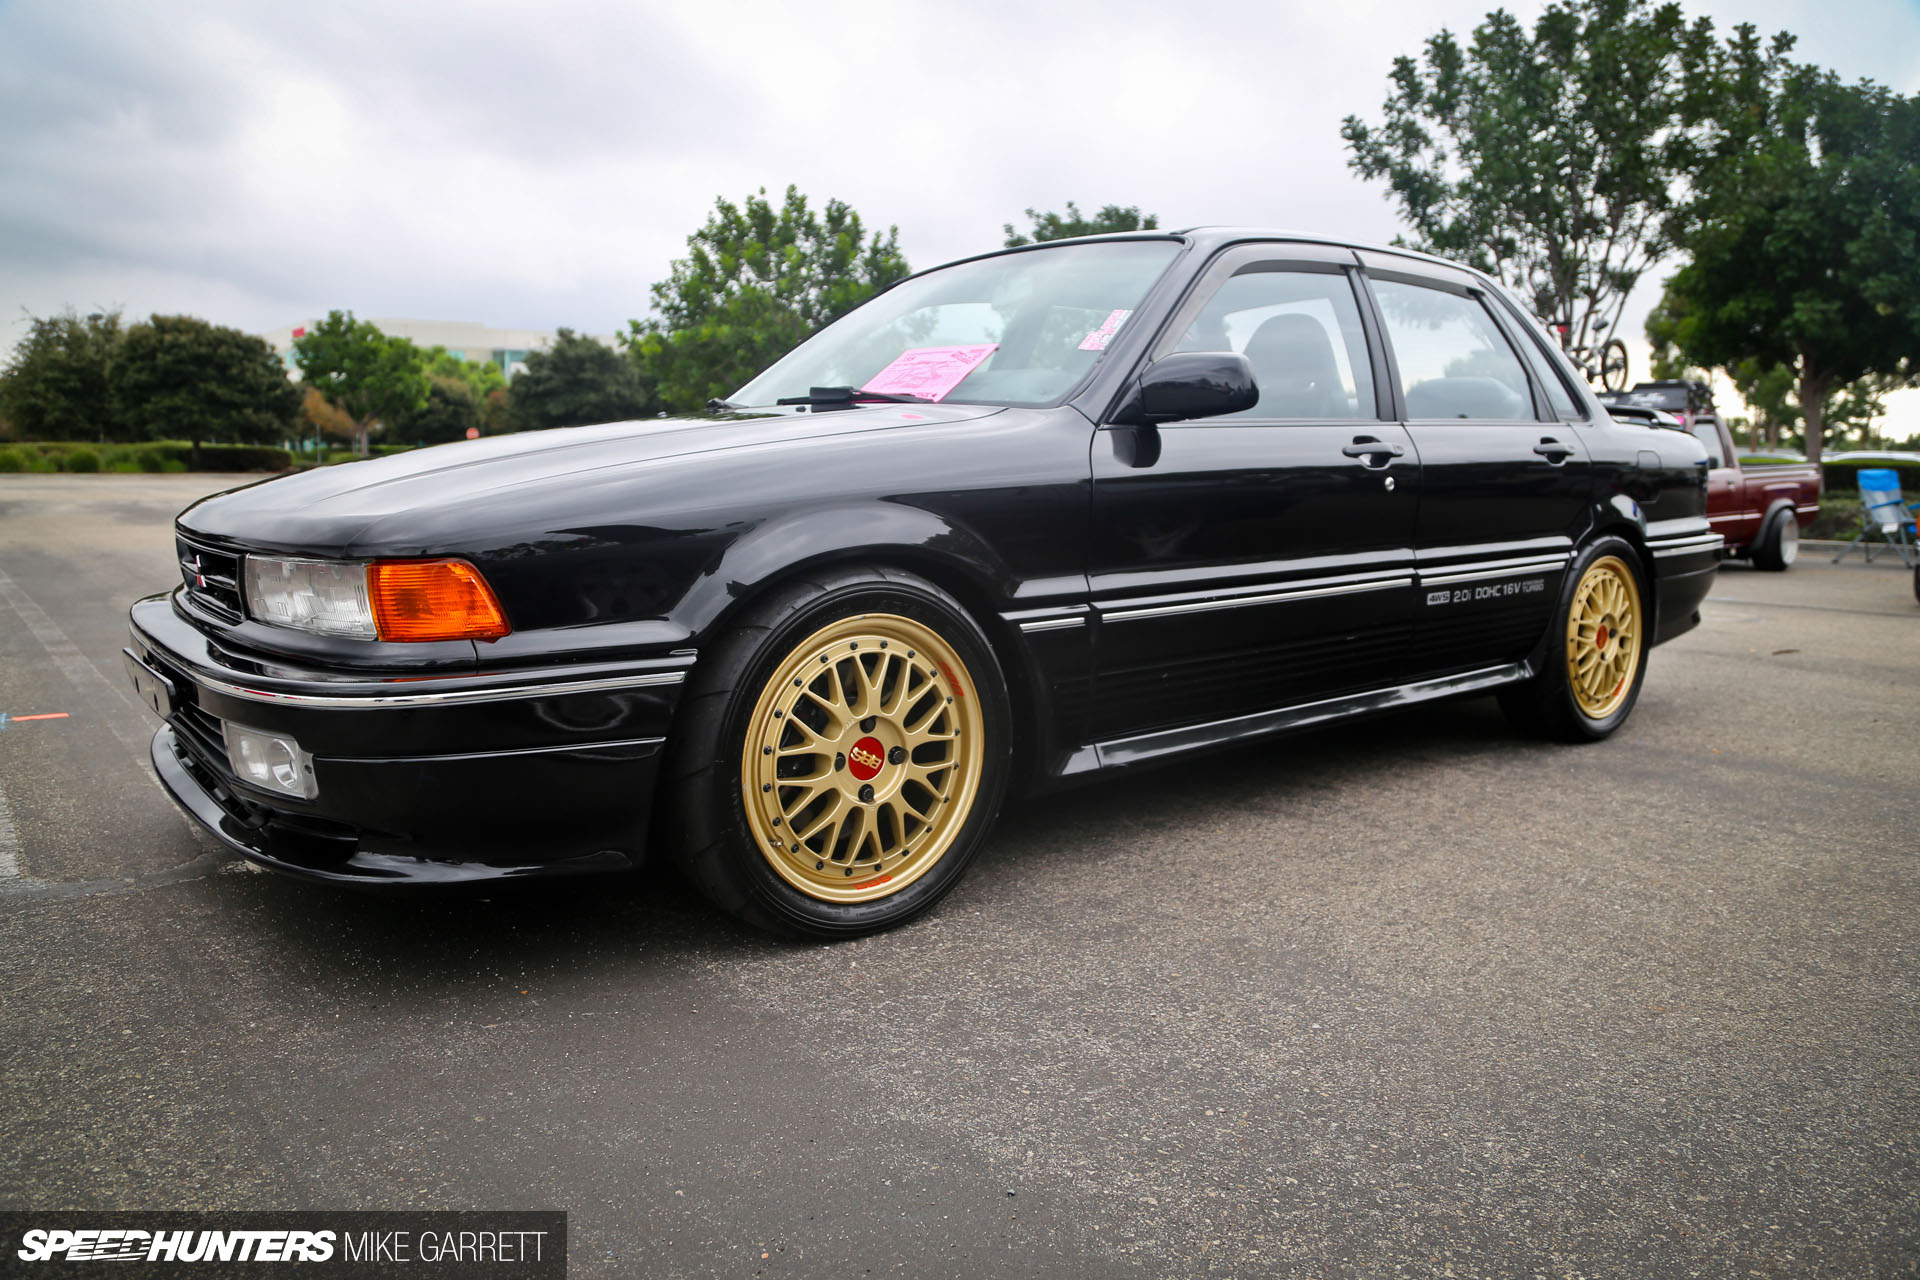 2015 Mitsubishi Galant >> Galant VR-4: Father Of The Evo - Speedhunters